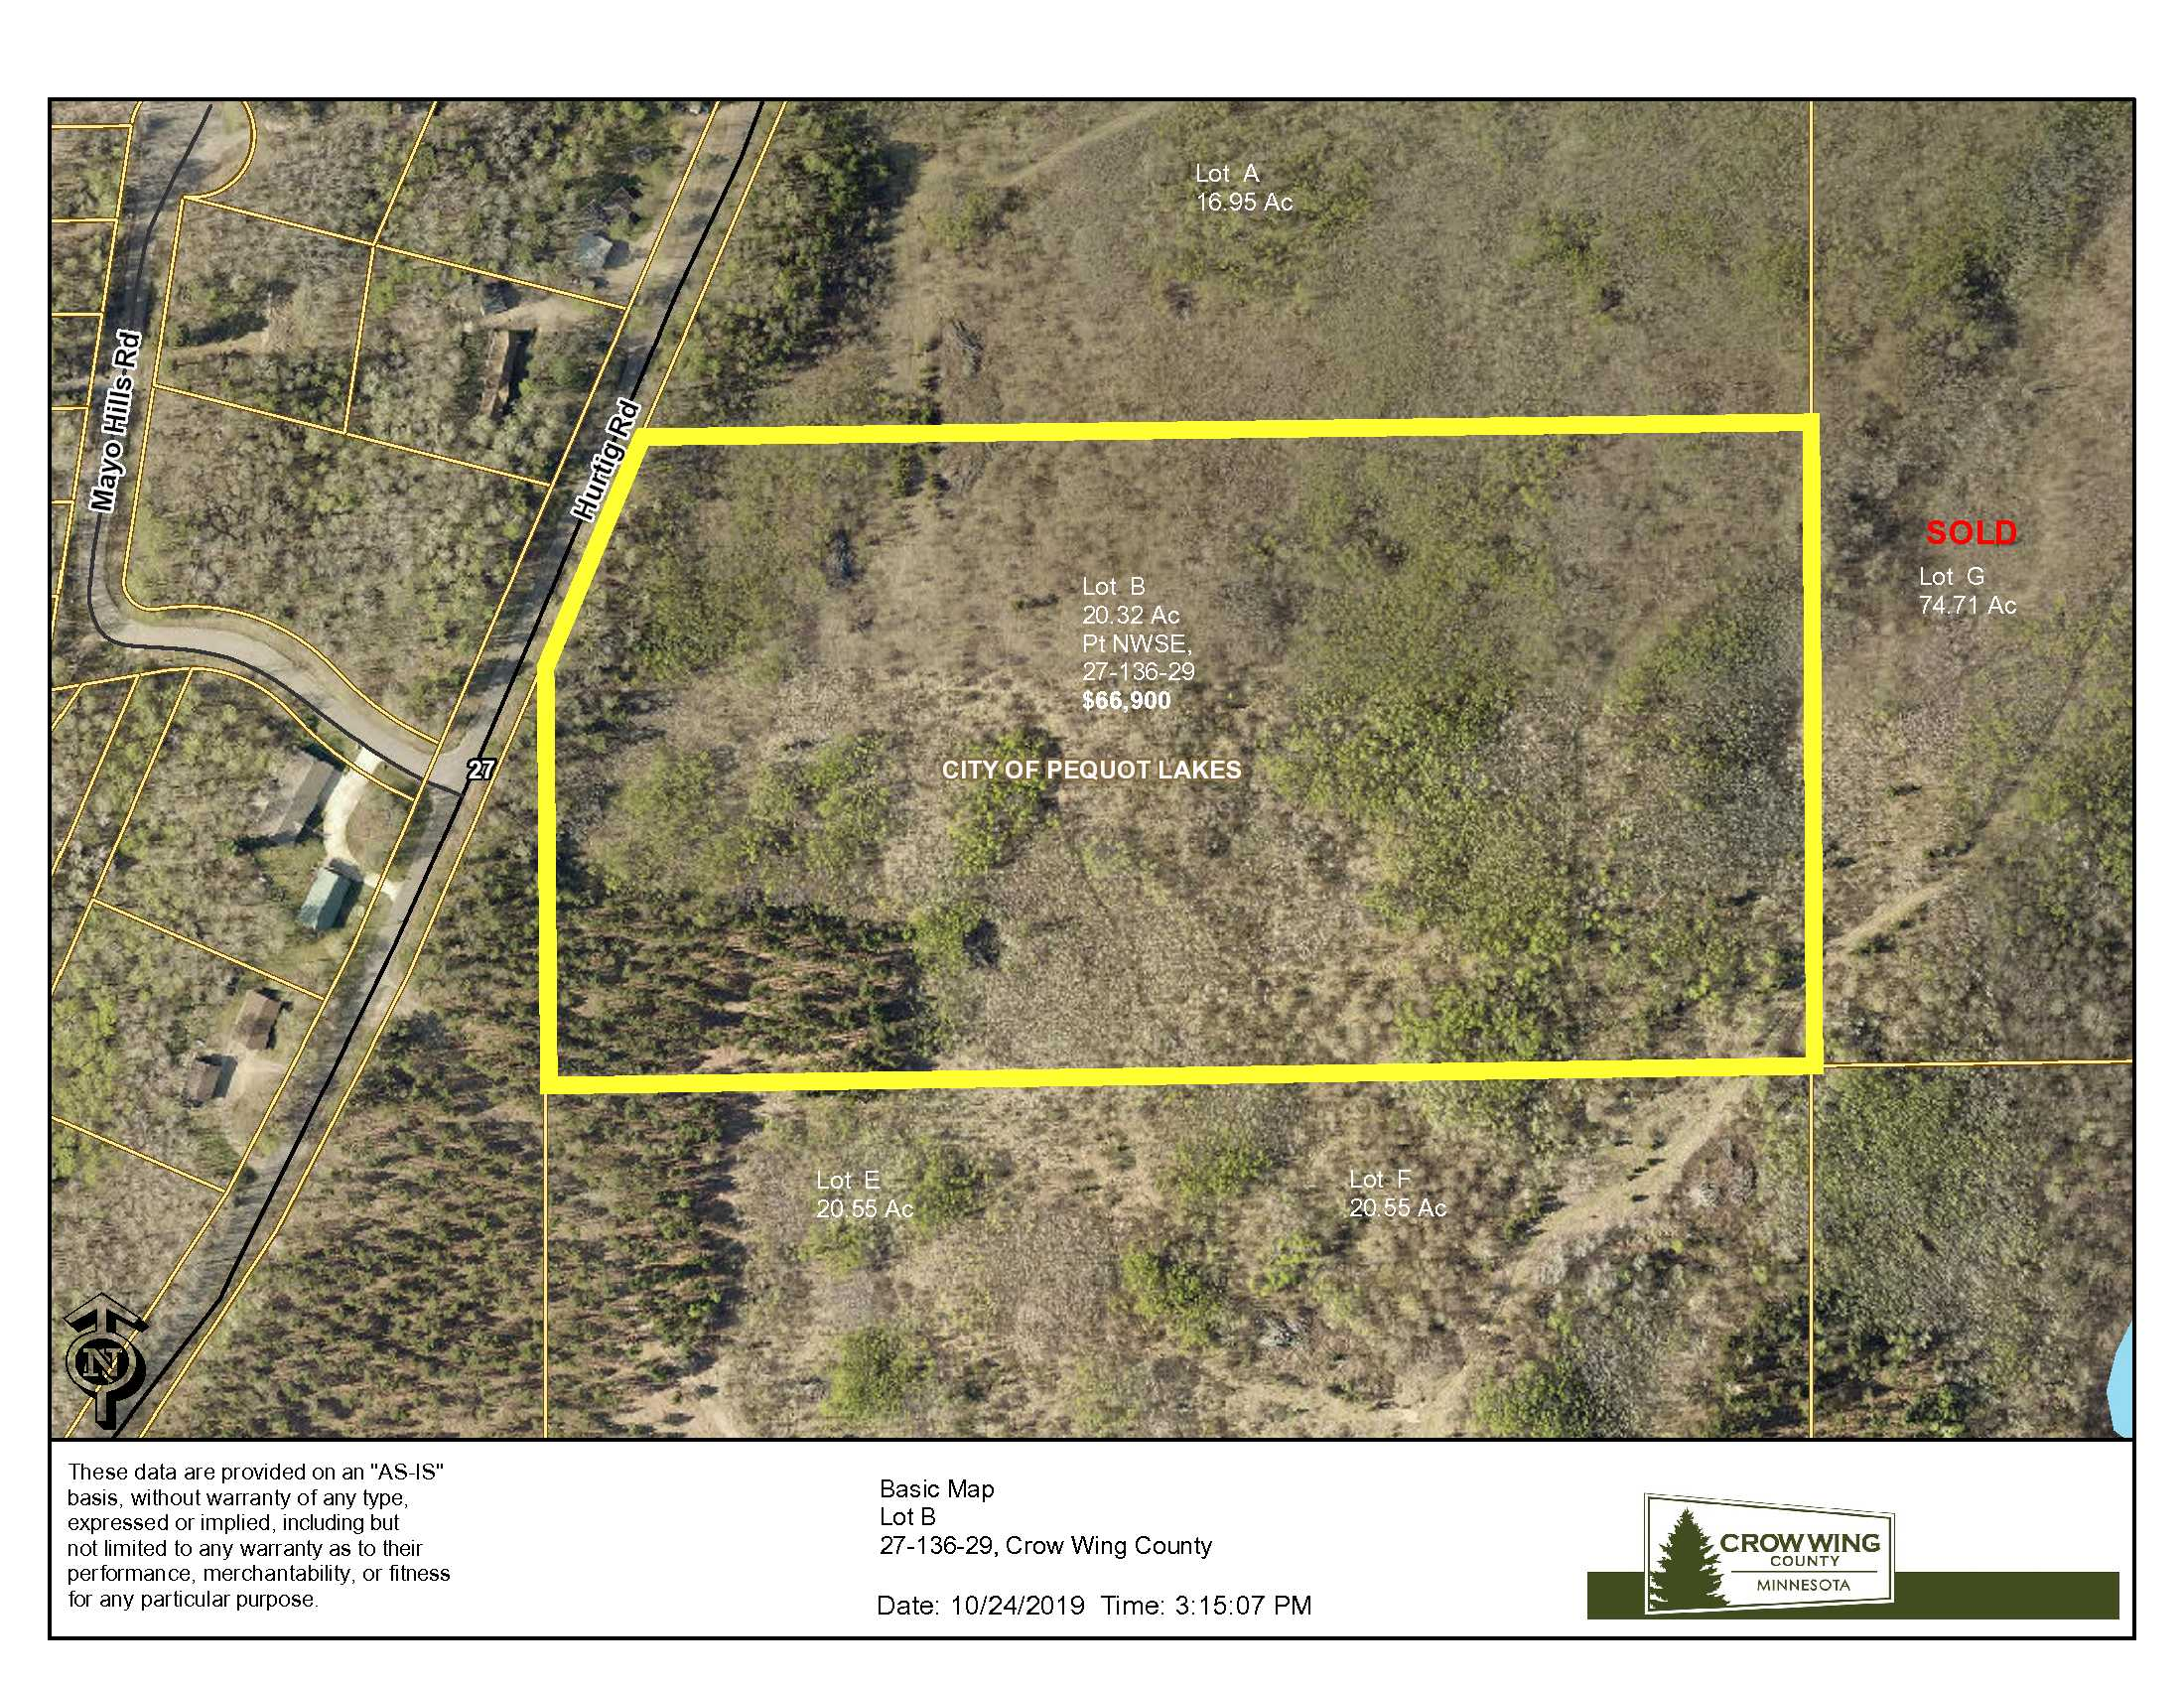 Lot B, 27-136-29, Hurtig Rd, Pequot Lakes, Crow Wing Co